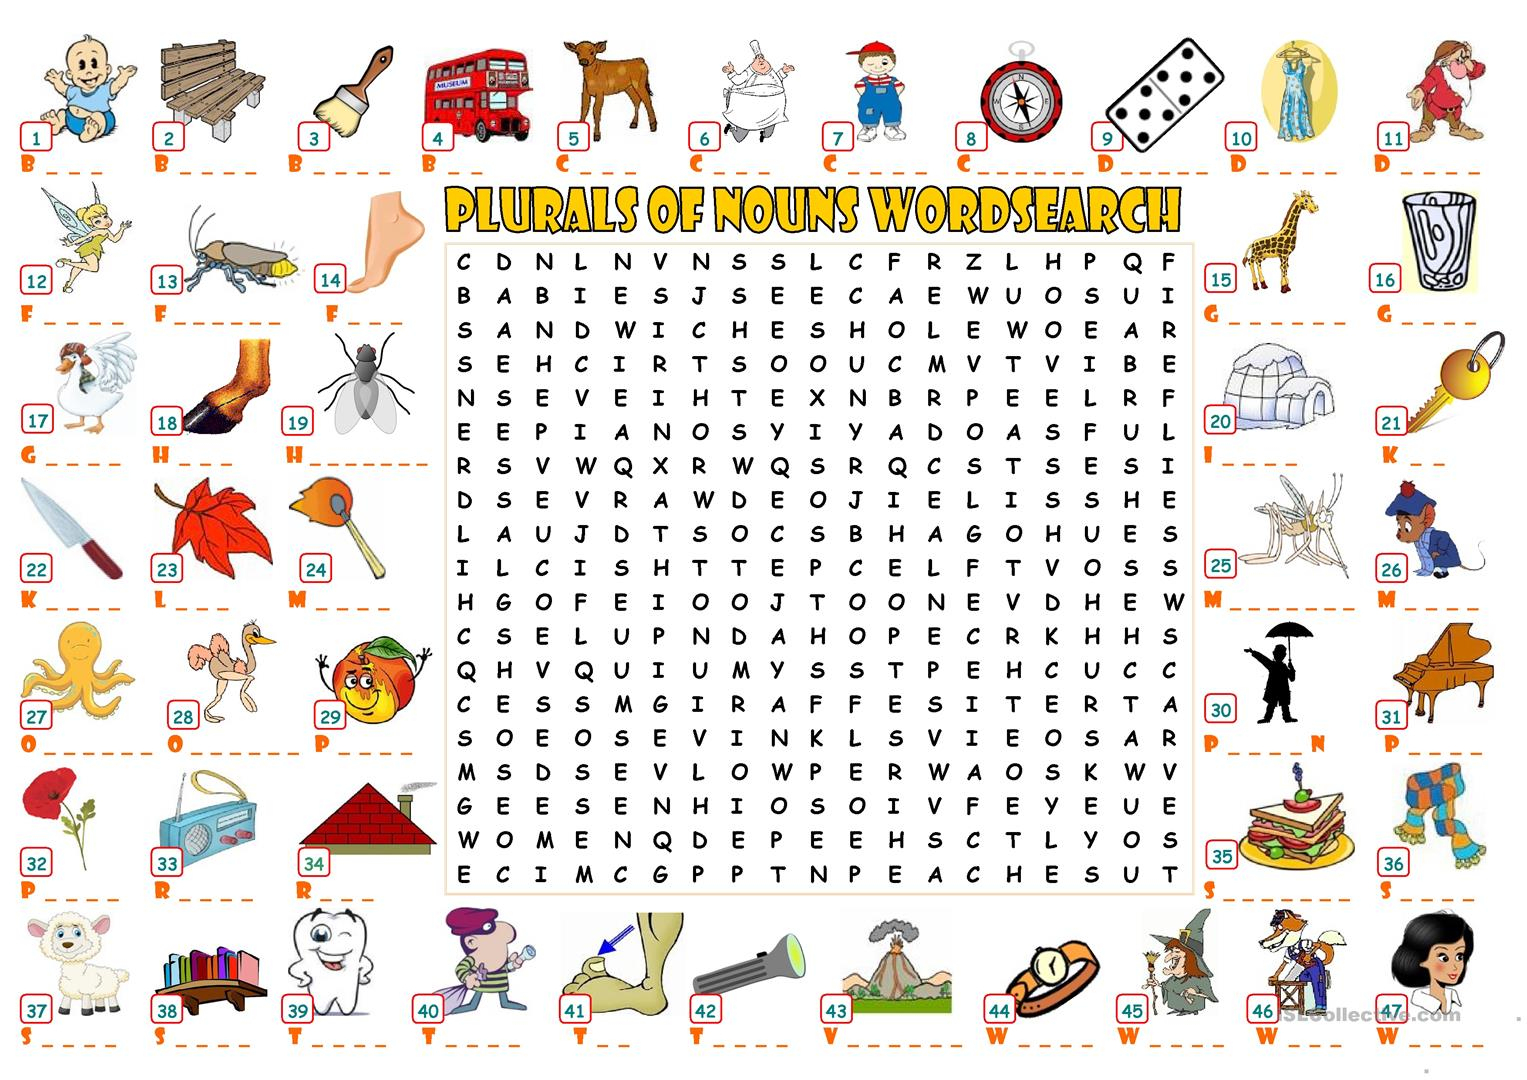 Plurals Of Nouns - Wordsearch - English Esl Worksheets For